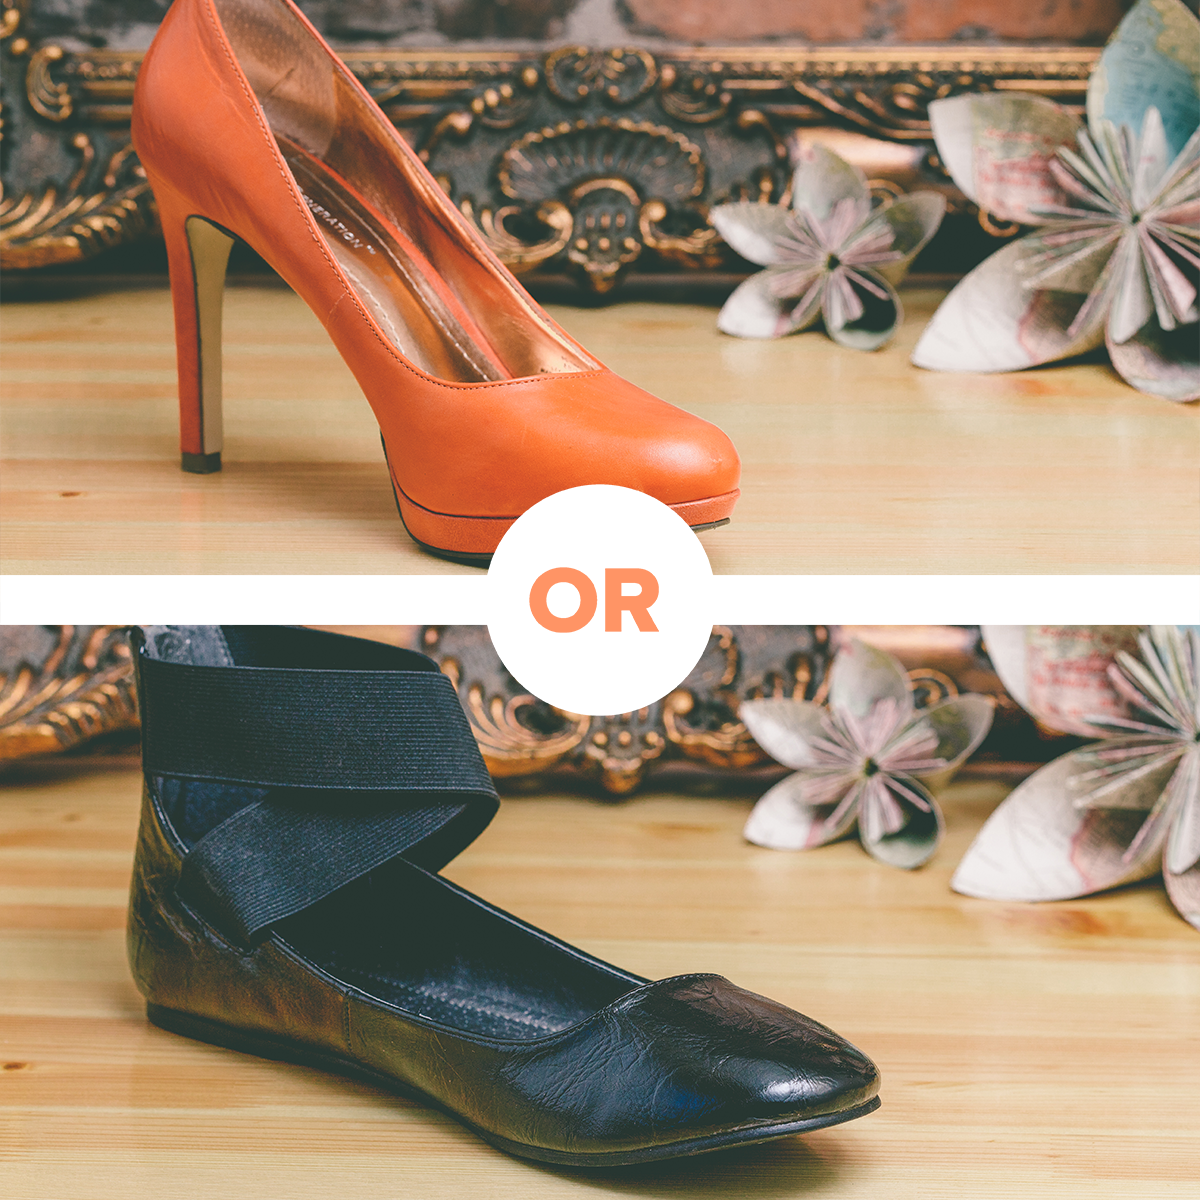 Which one do you prefer shoes more suede or leather? 18